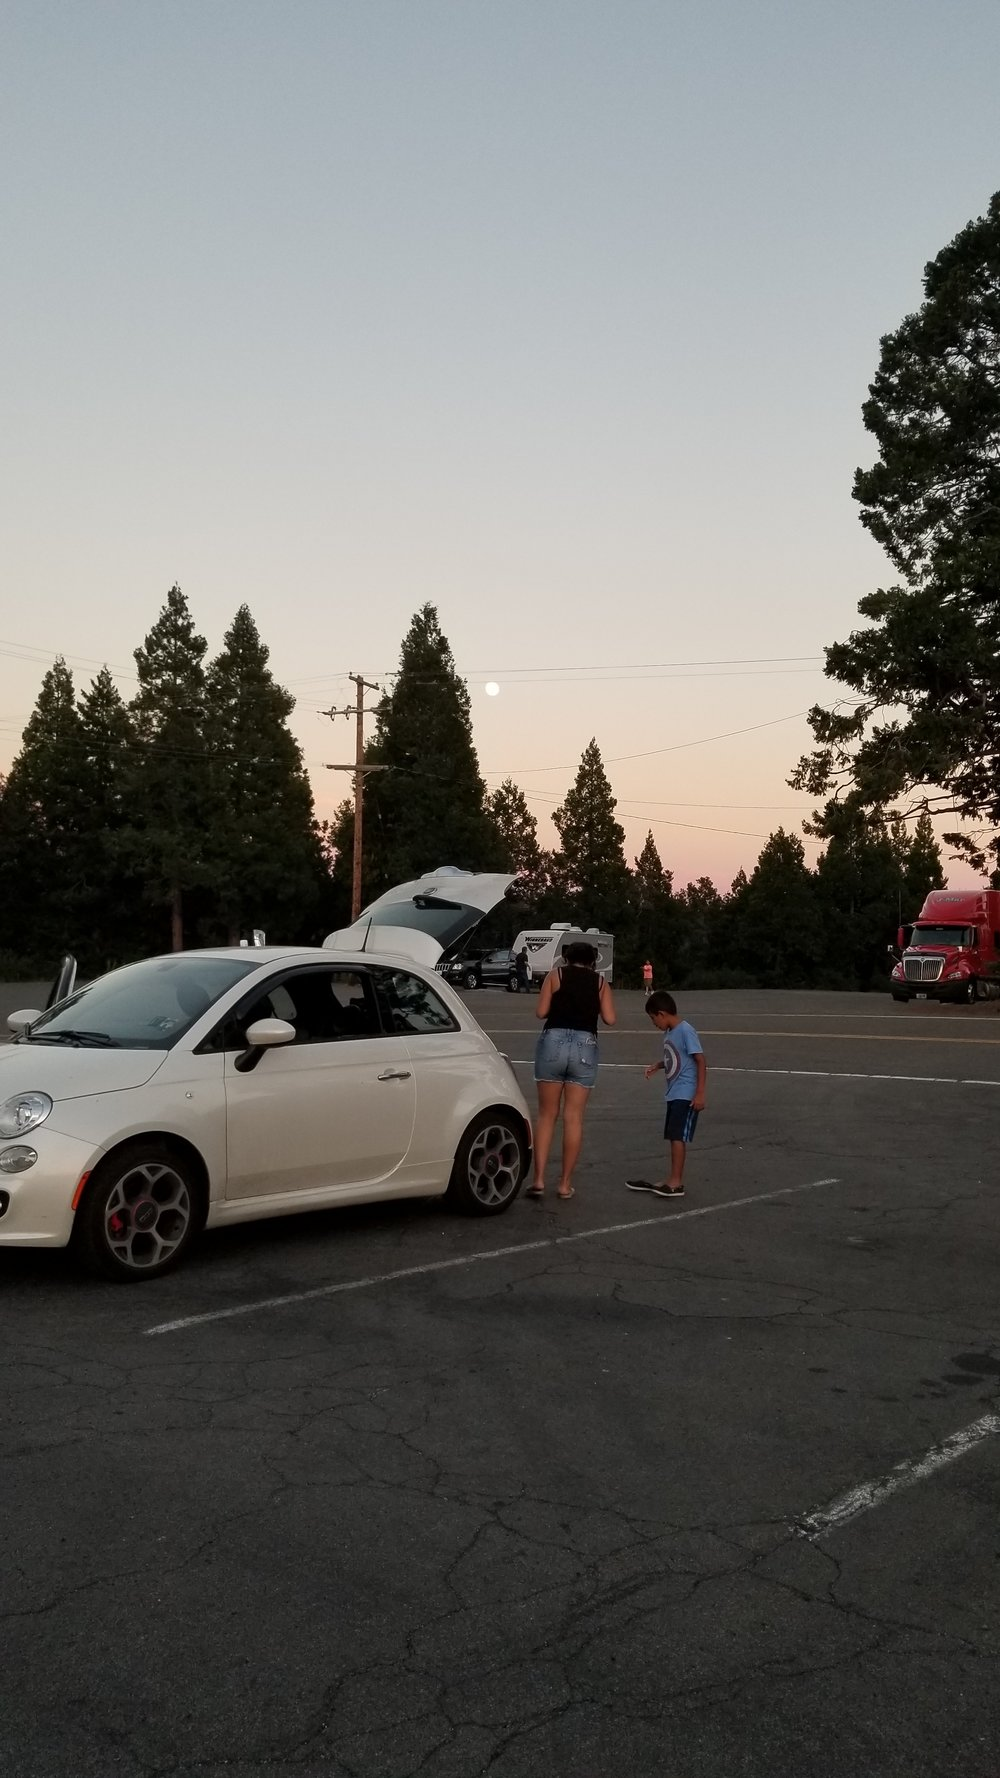 Me and my son at a rest area in Yosemite